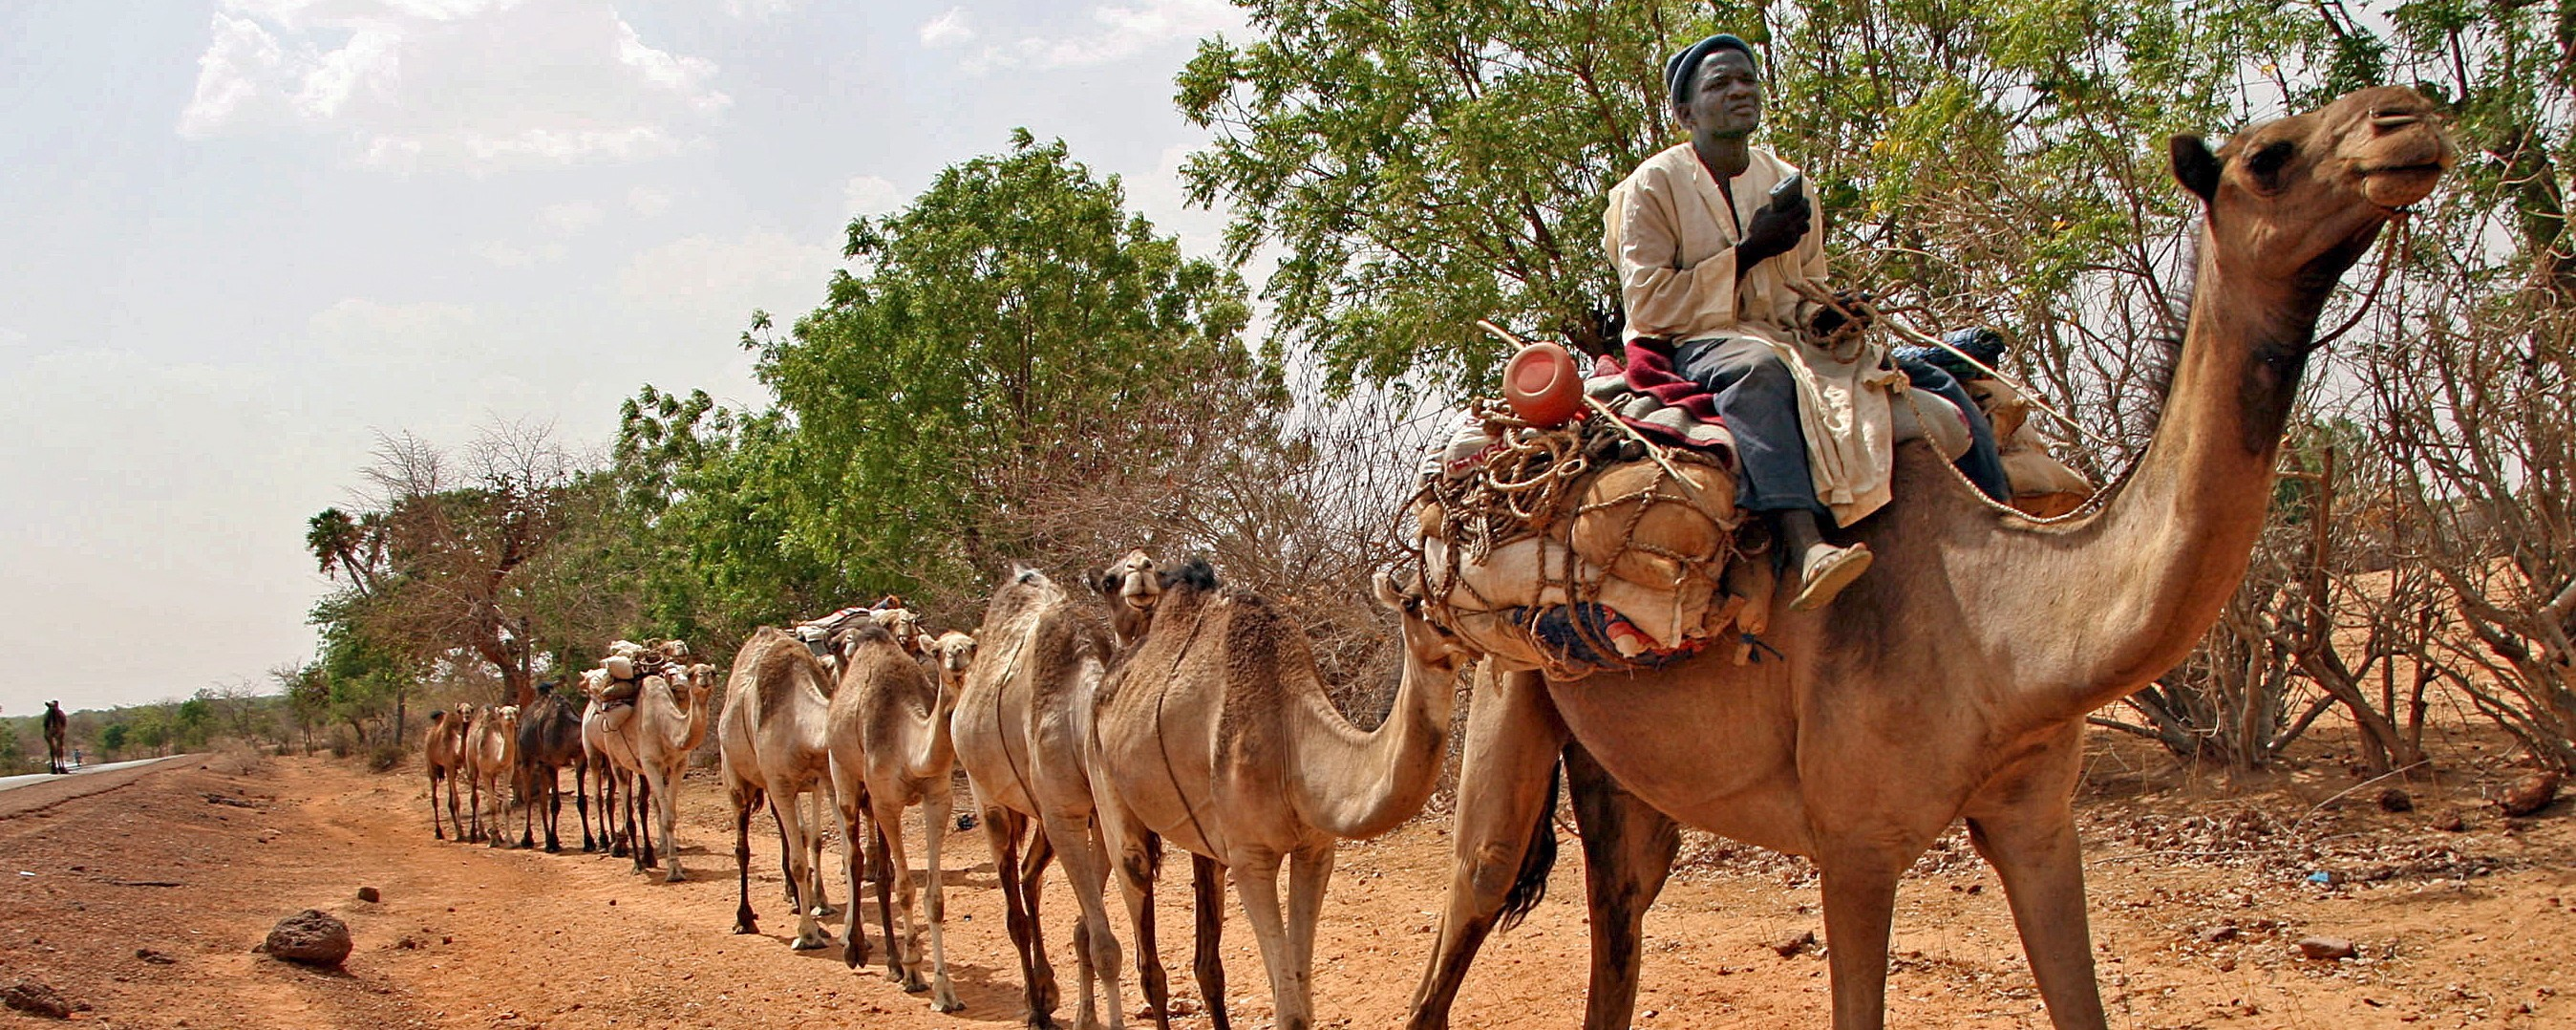 Northern Nigeria Bans Cars, Bicycles, and Camels to Thwart Boko Haram During Eid